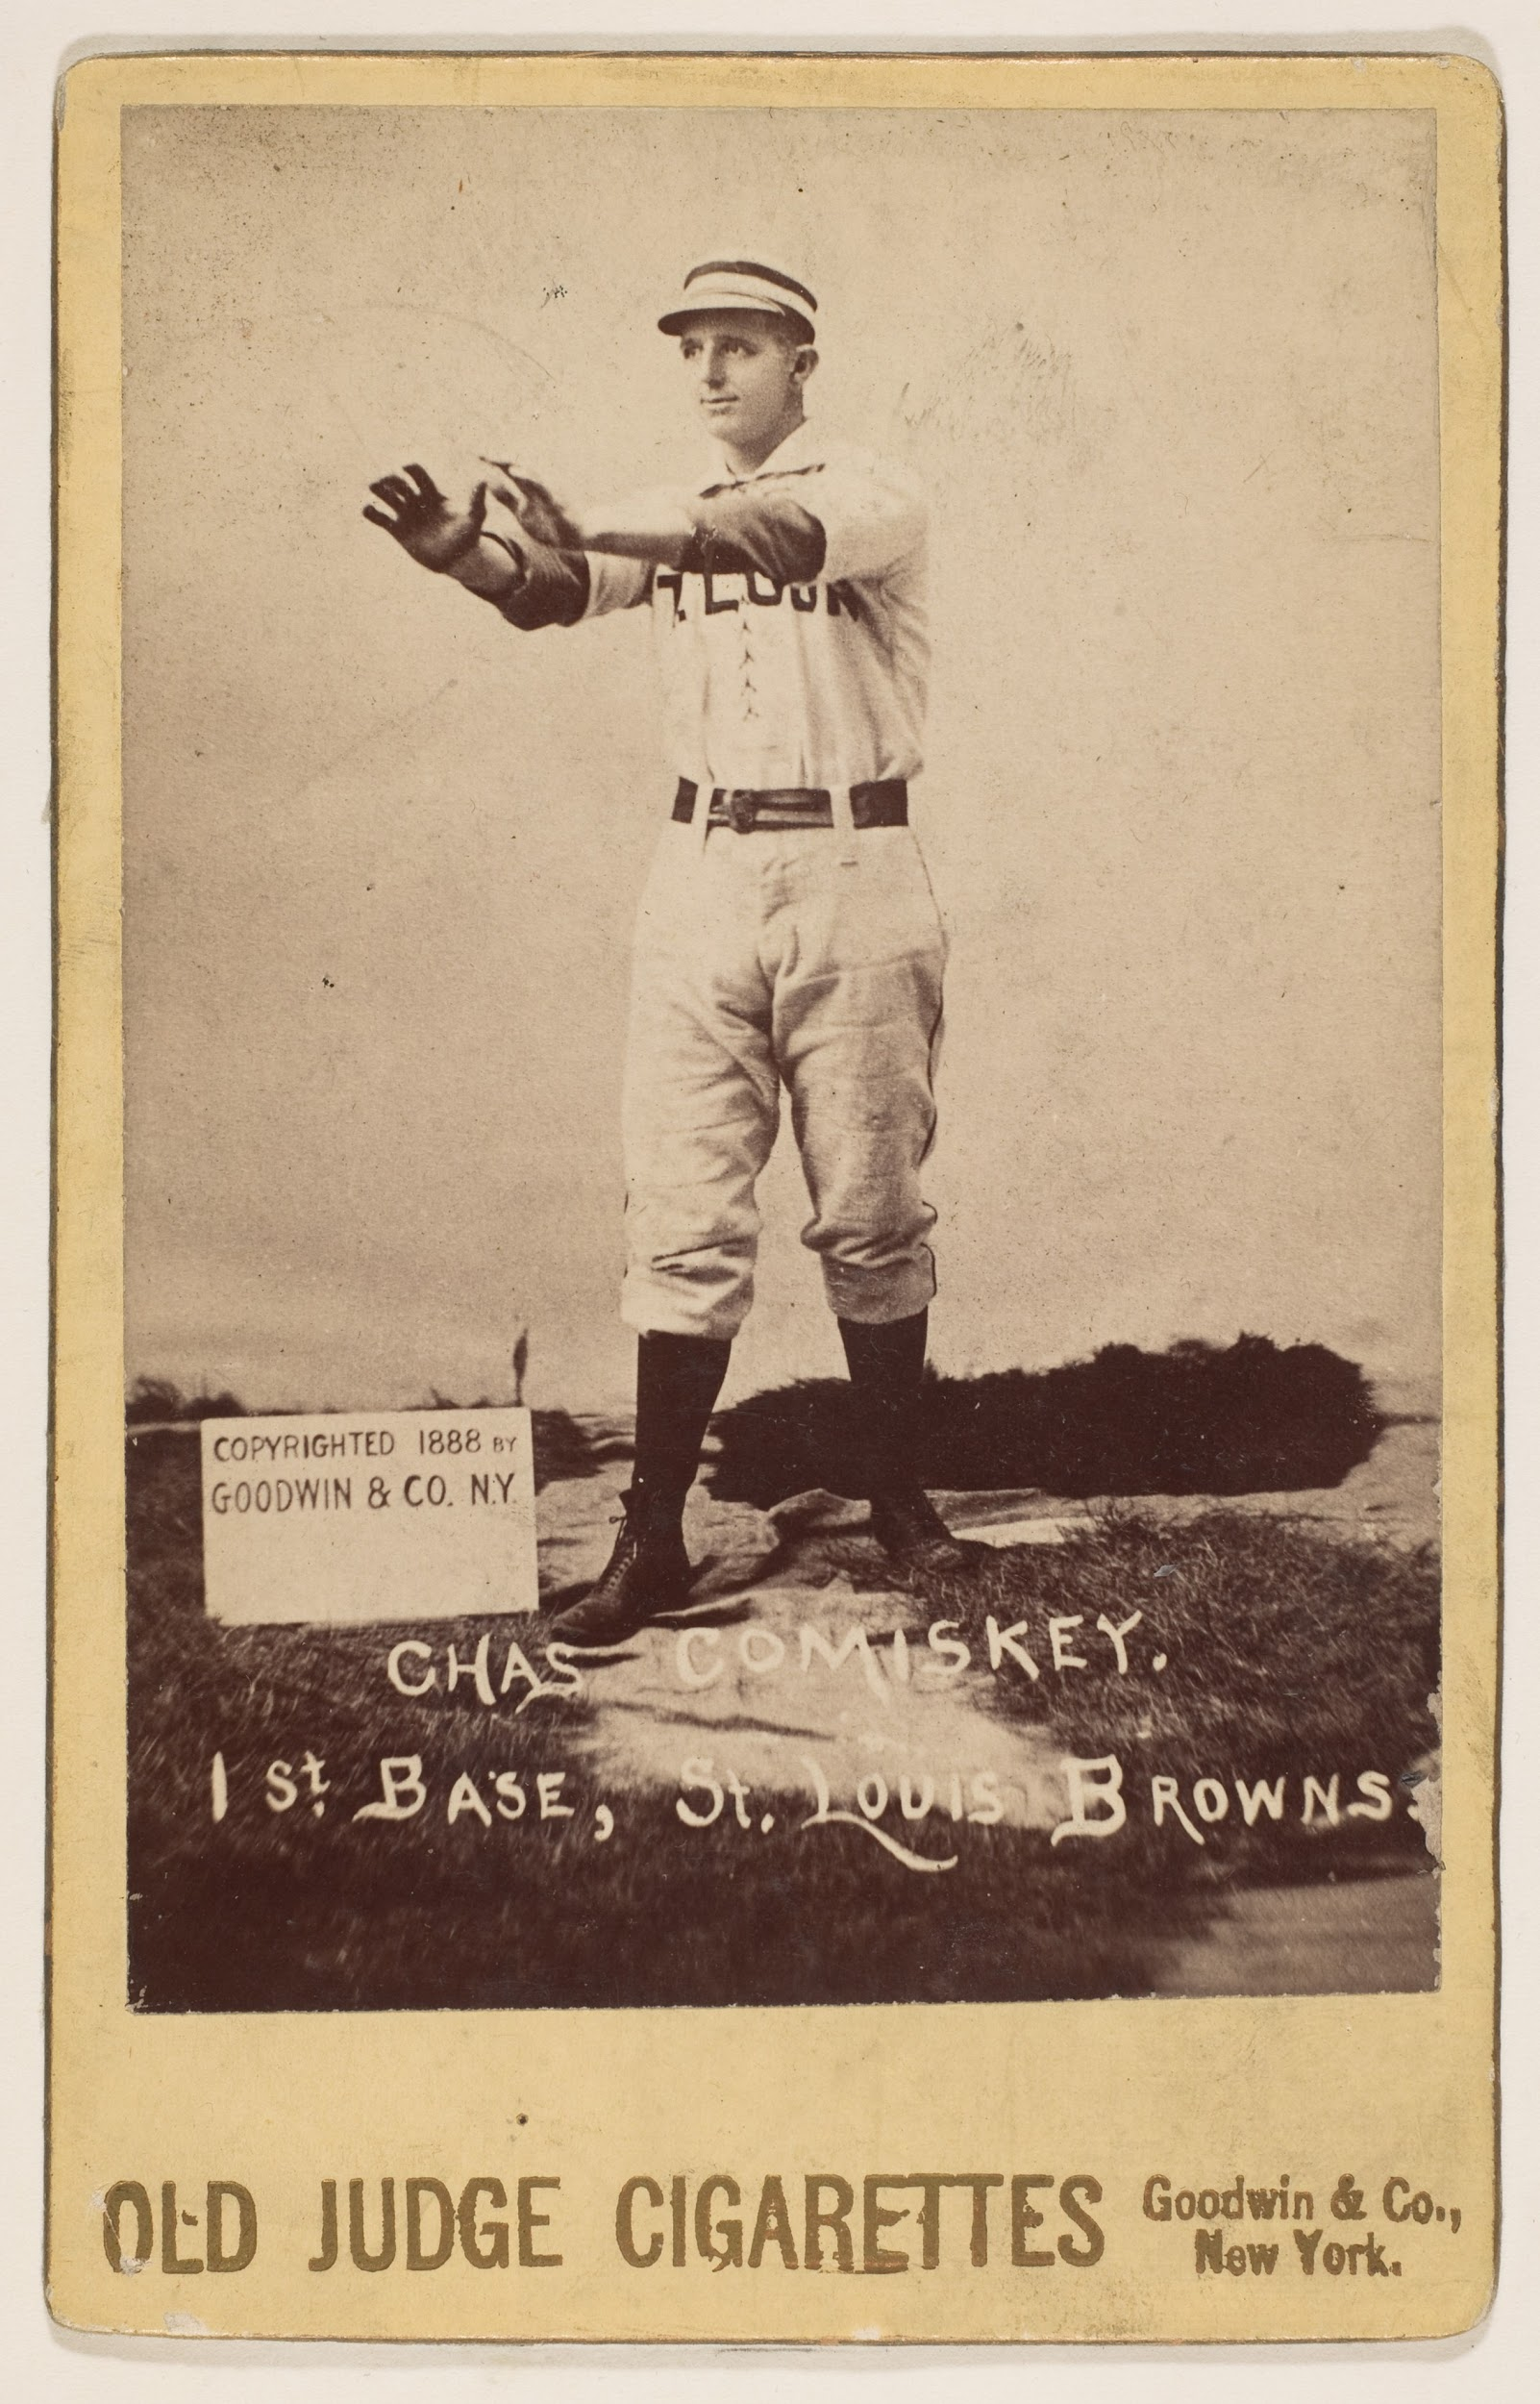 Charles_Comiskey_Old_Judge_1888.jpg